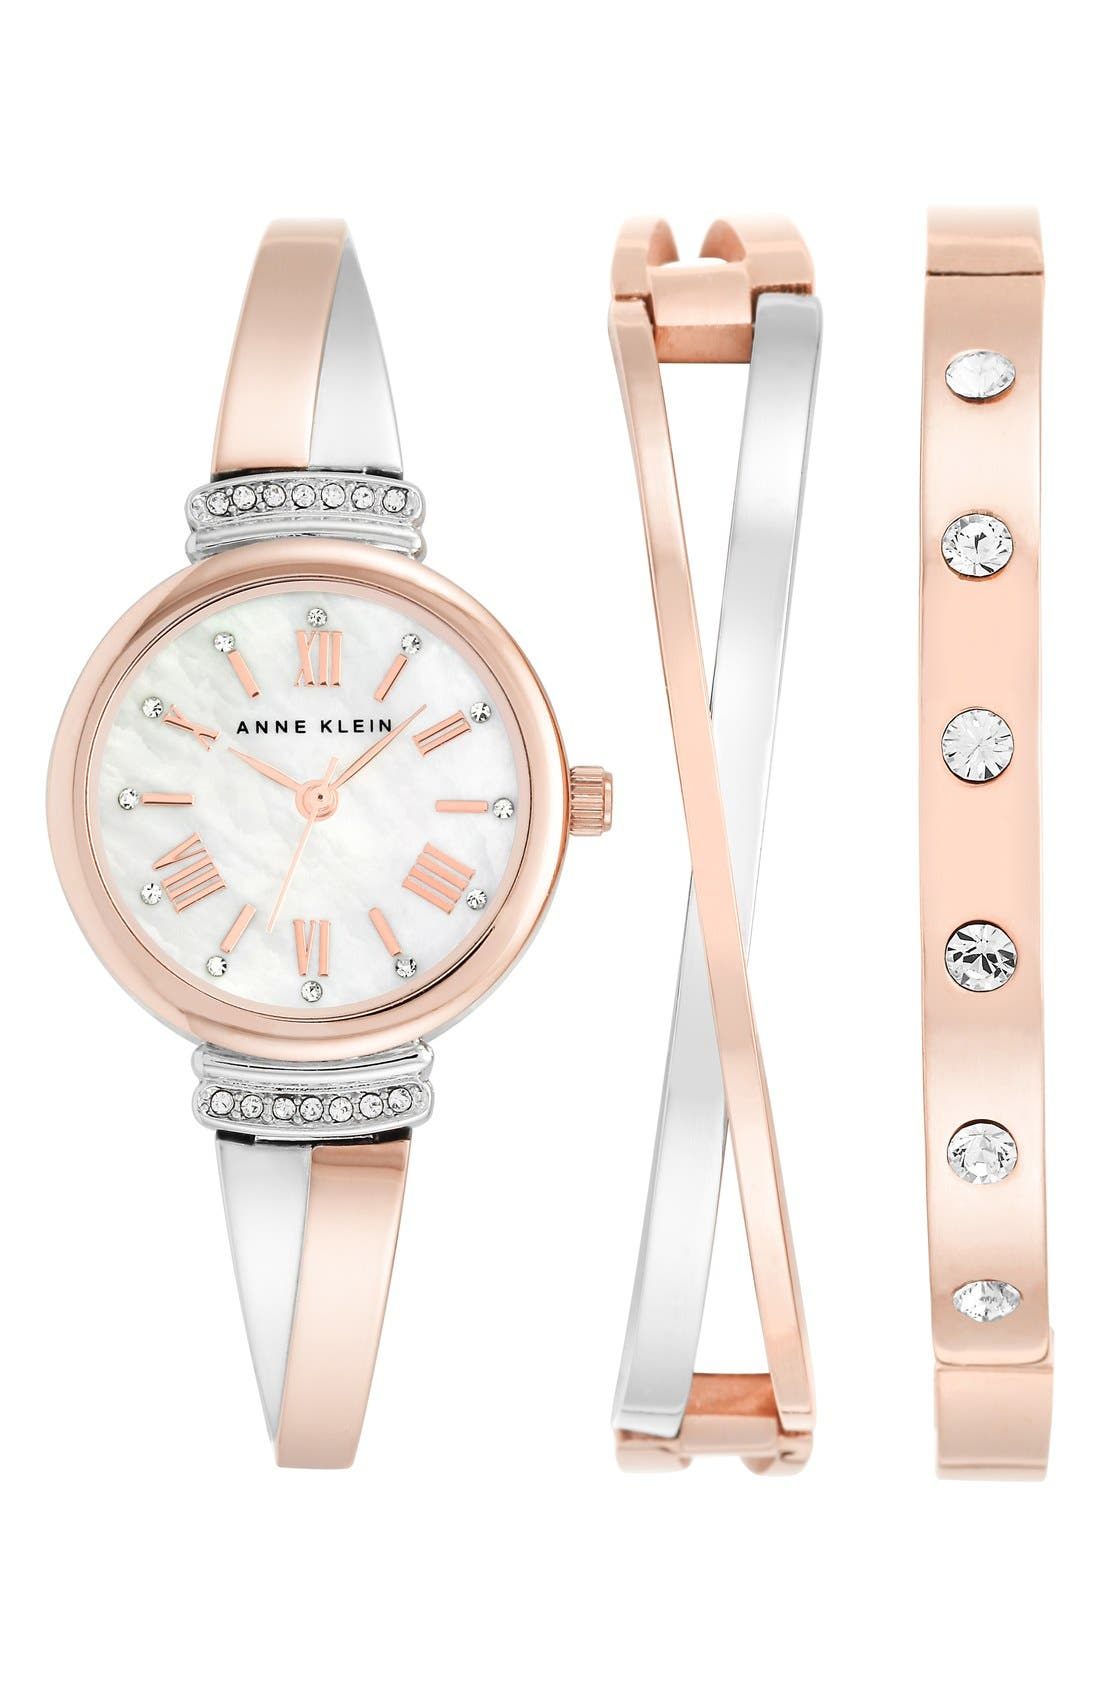 Anne Klein Round Watch & Bangle Set, 26mm